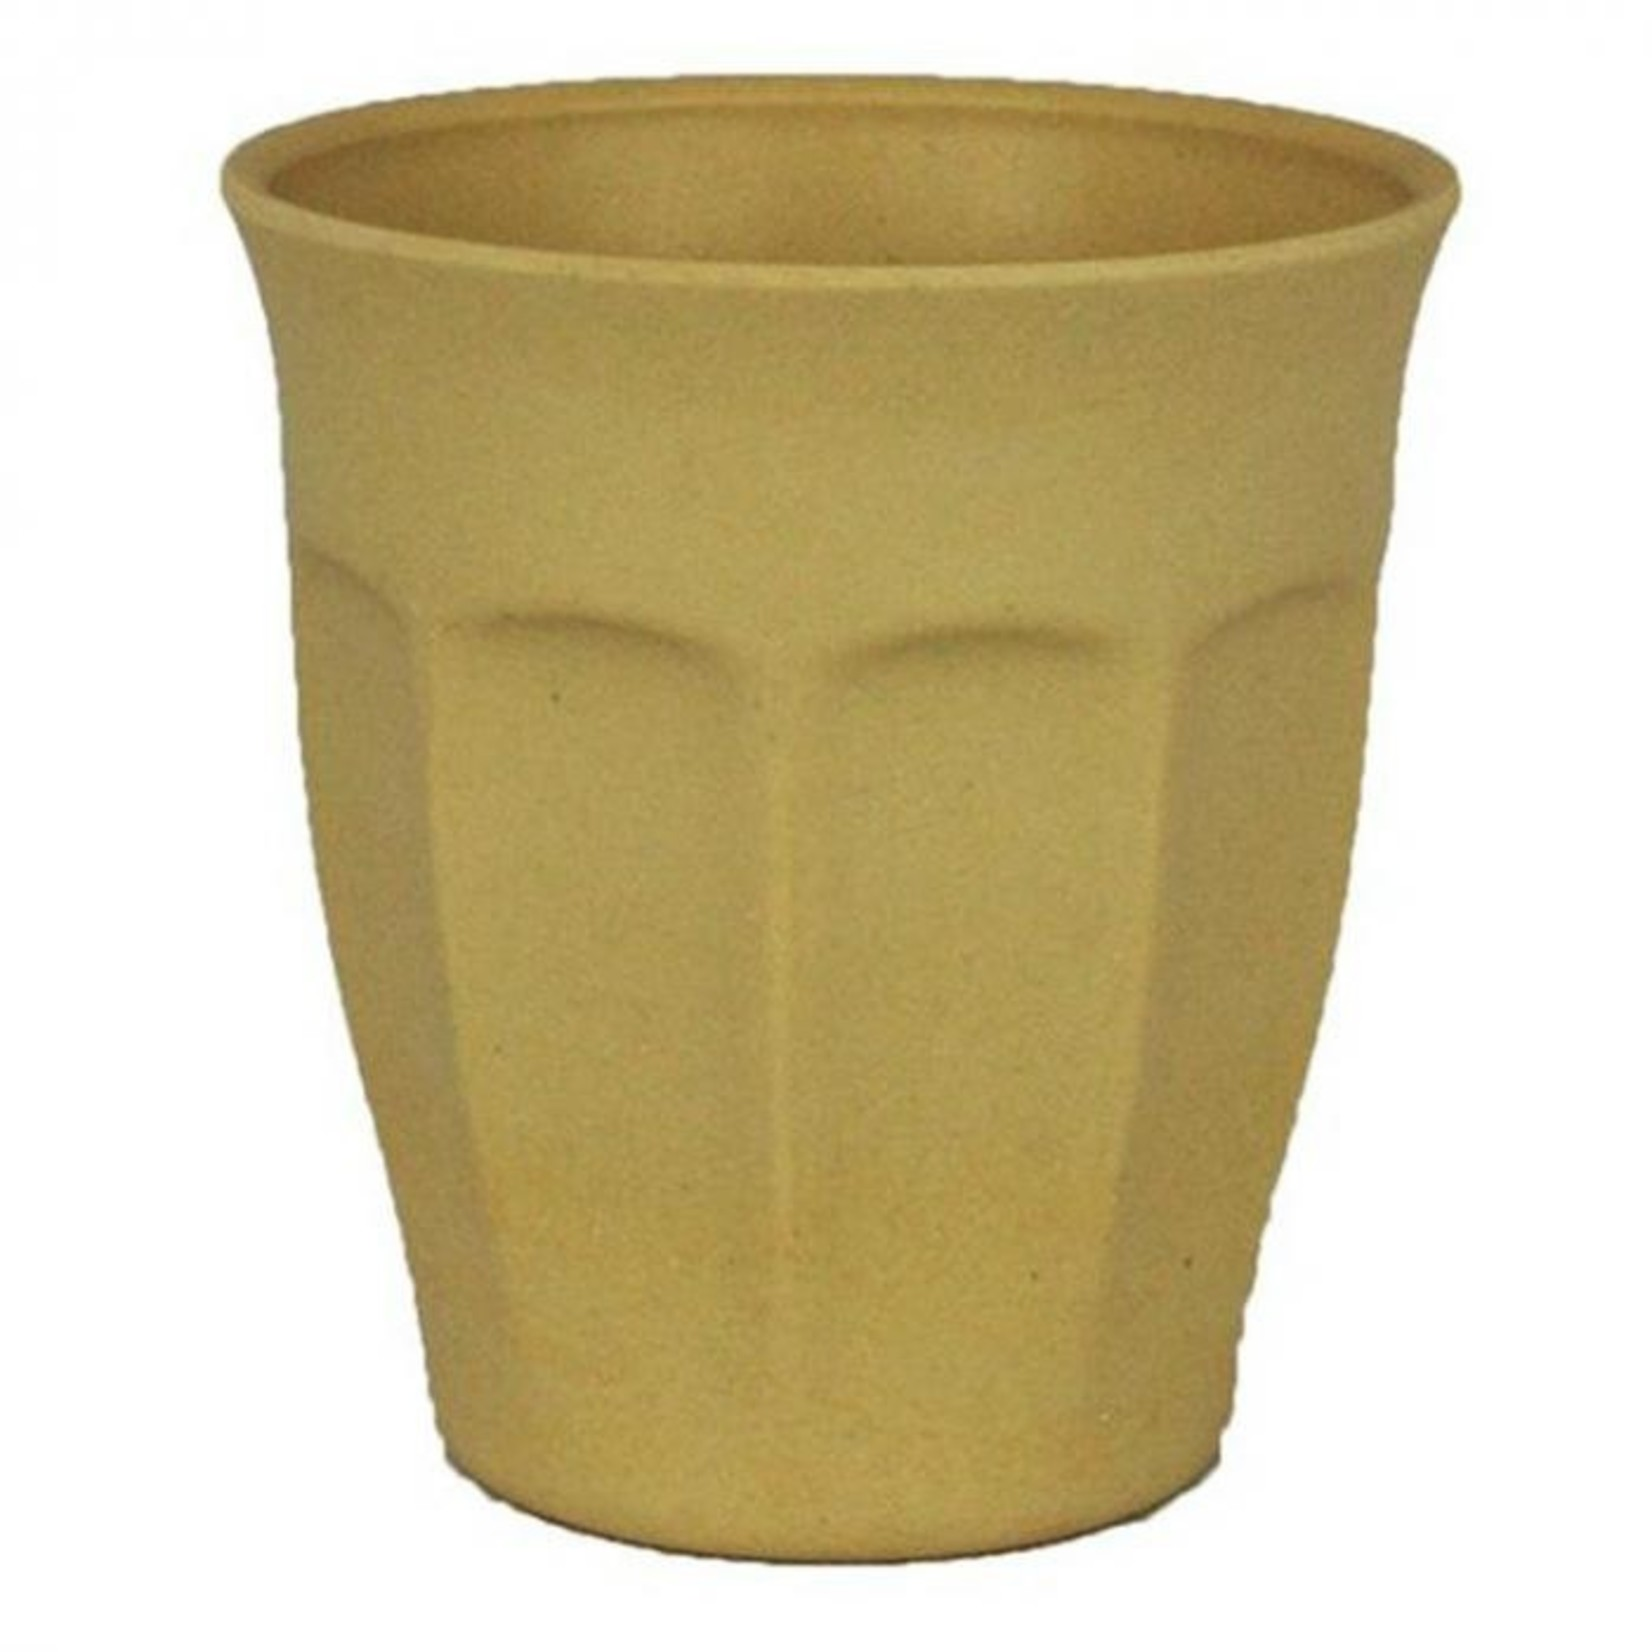 EcoSoulife EcoSoulife Latte Cup 248ml Almond